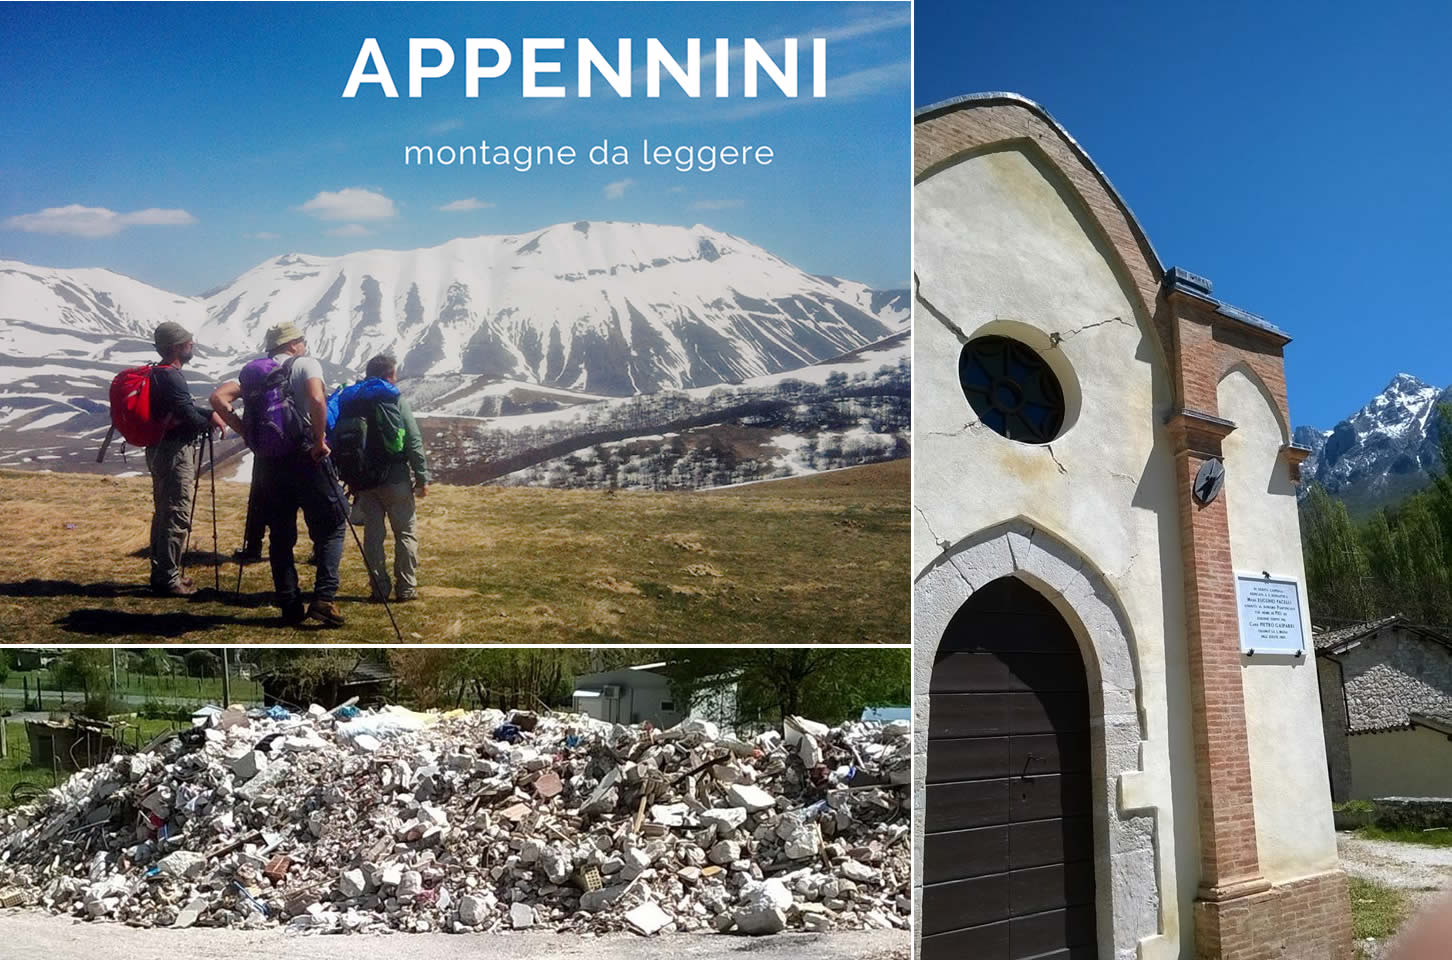 appennini gianluca diamanti_03